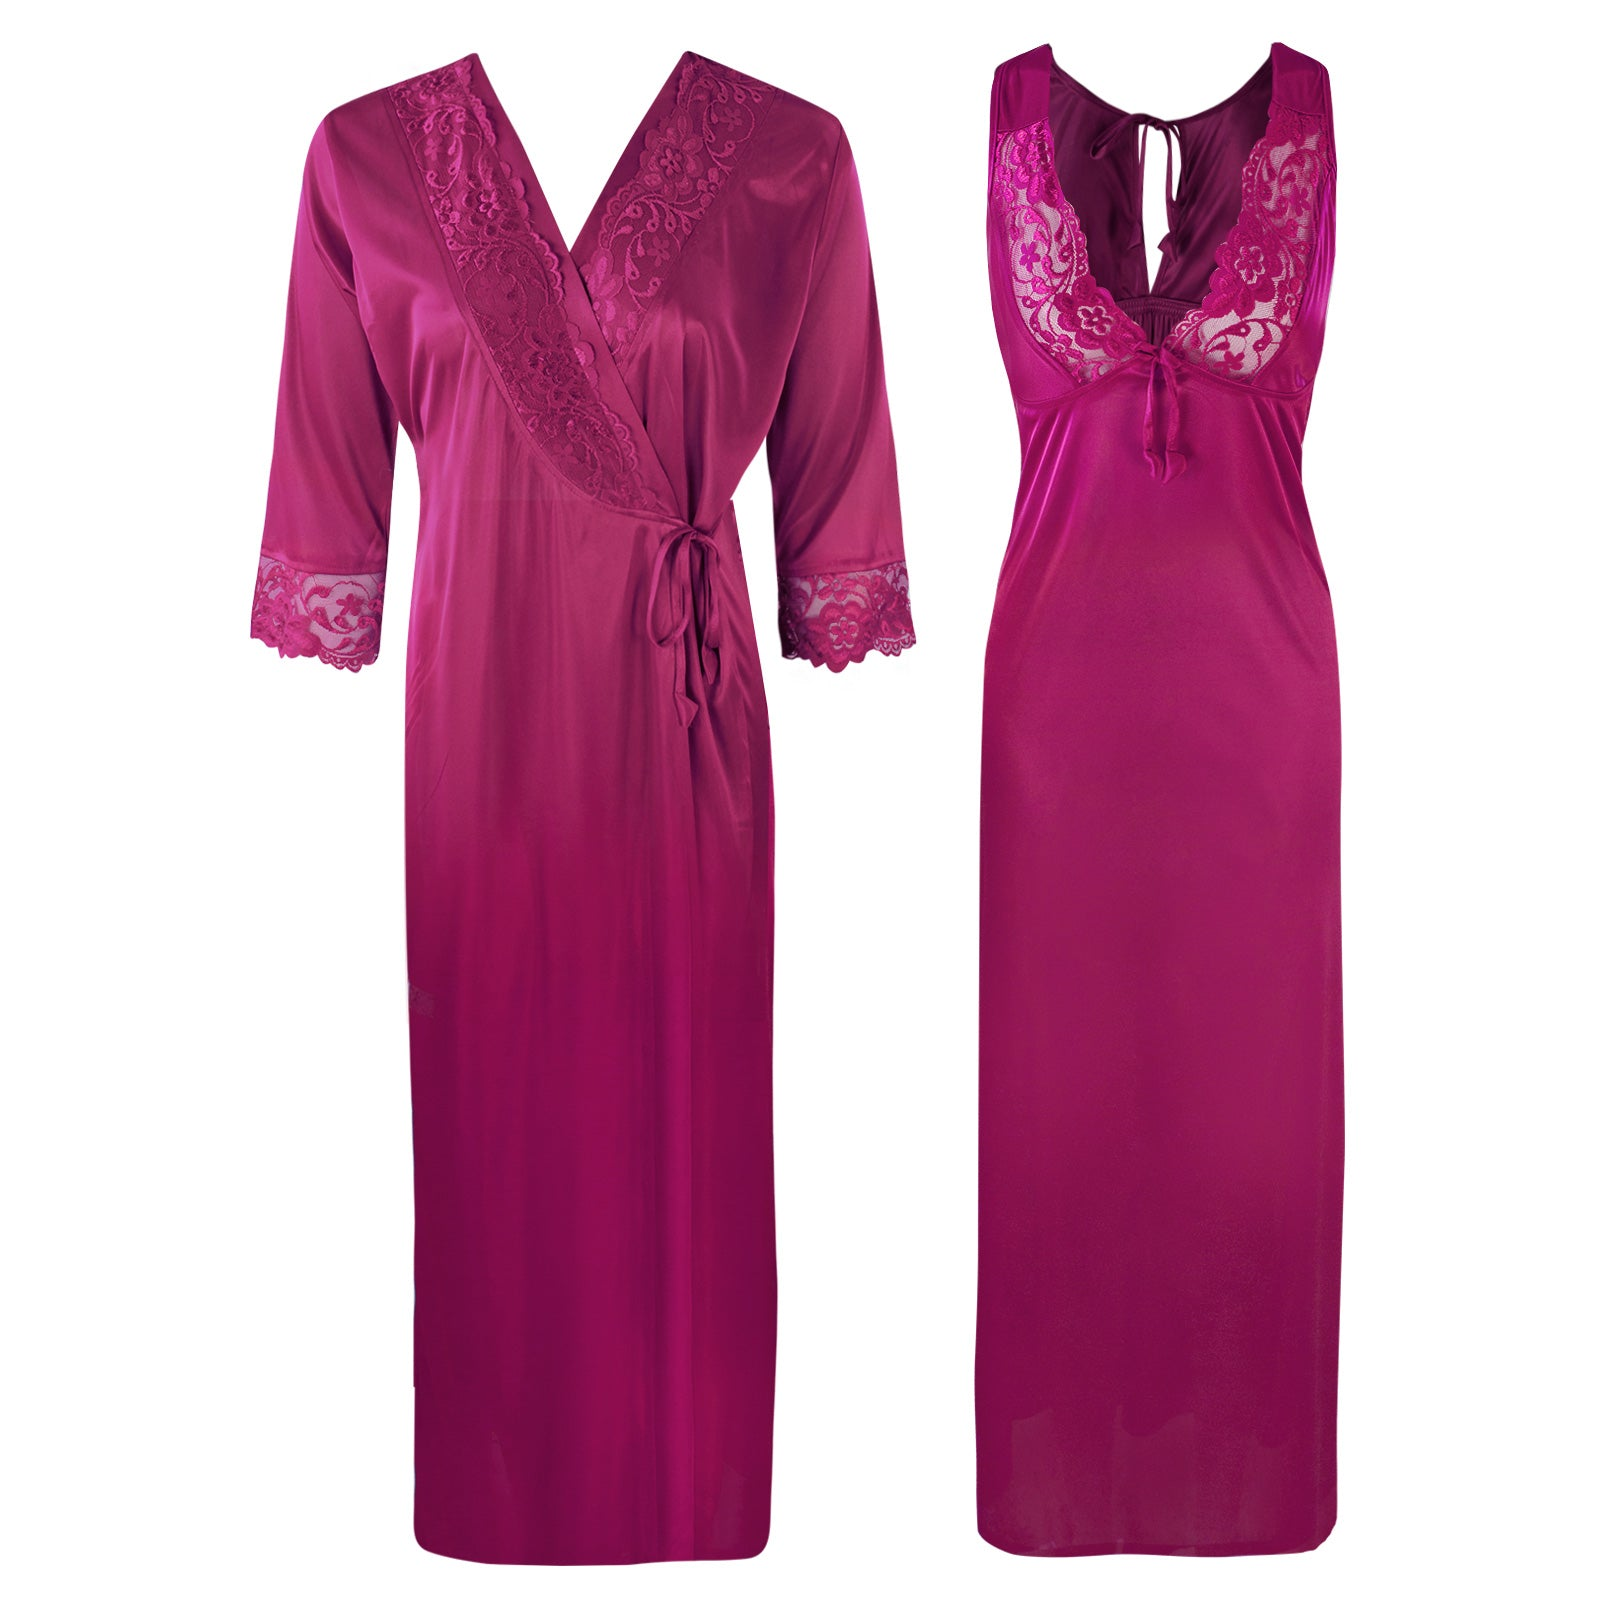 Sexy 2Pc Satin Lace Nightdress and Robe [colour]- Hautie UK, #Nightfashion | #Underfashion  SIZE 8 10 12 14 16 WINE